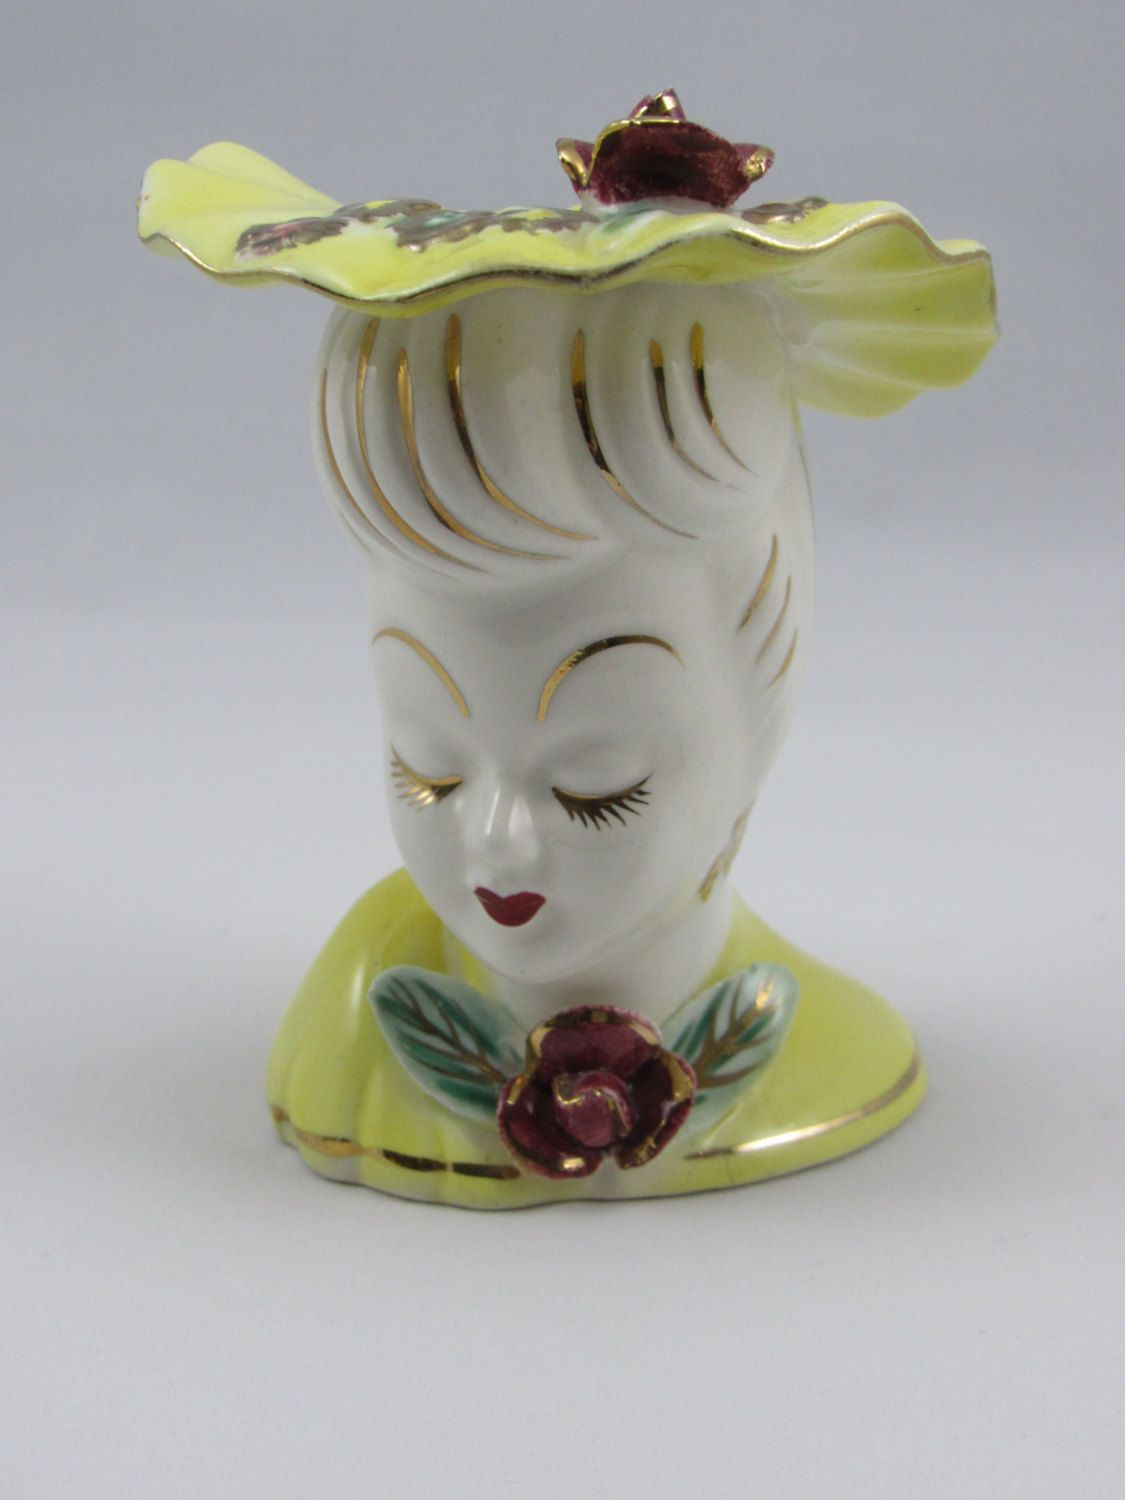 1958 napco lady head vase of vintage mid century glamour girl lady head vase with yellow hat and intended for vintage mid century glamour girl lady head vase with yellow hat and dress dress with flowers and gold trim the 1950s head vase is 4 tall by